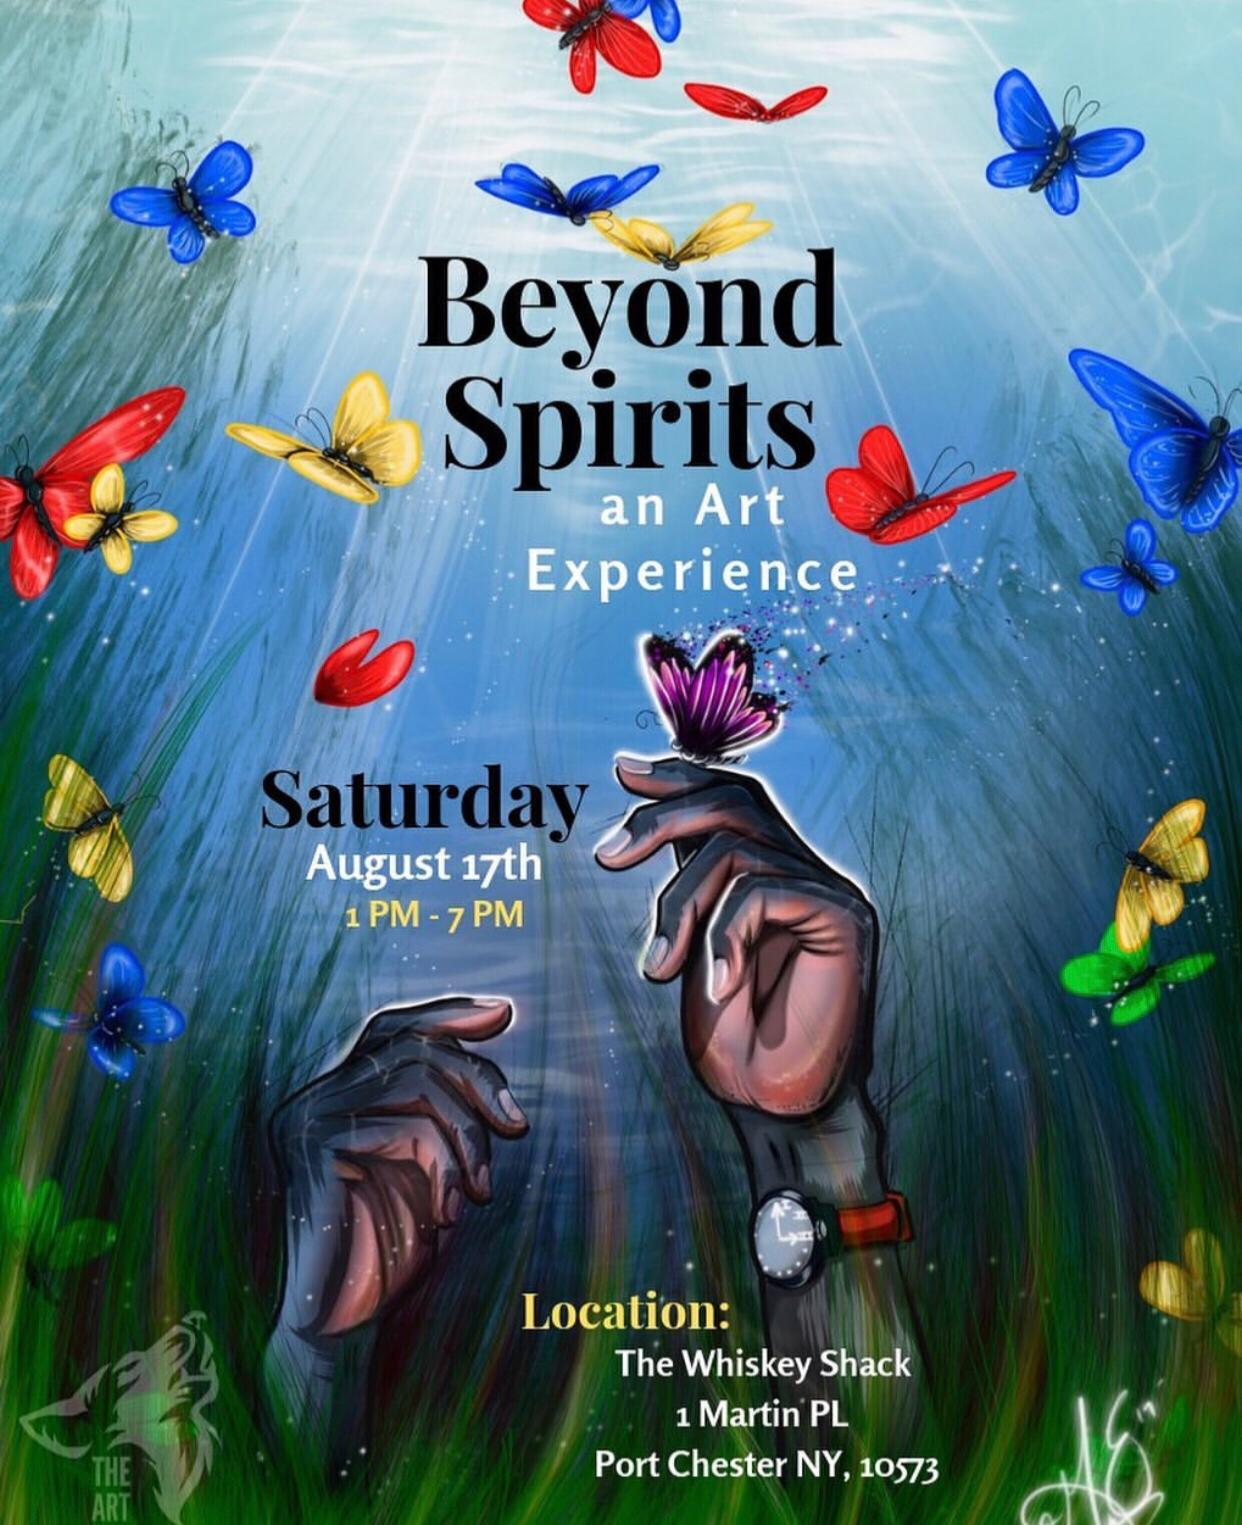 BEYOND SPIRITS: THE ART EXPERIENCE